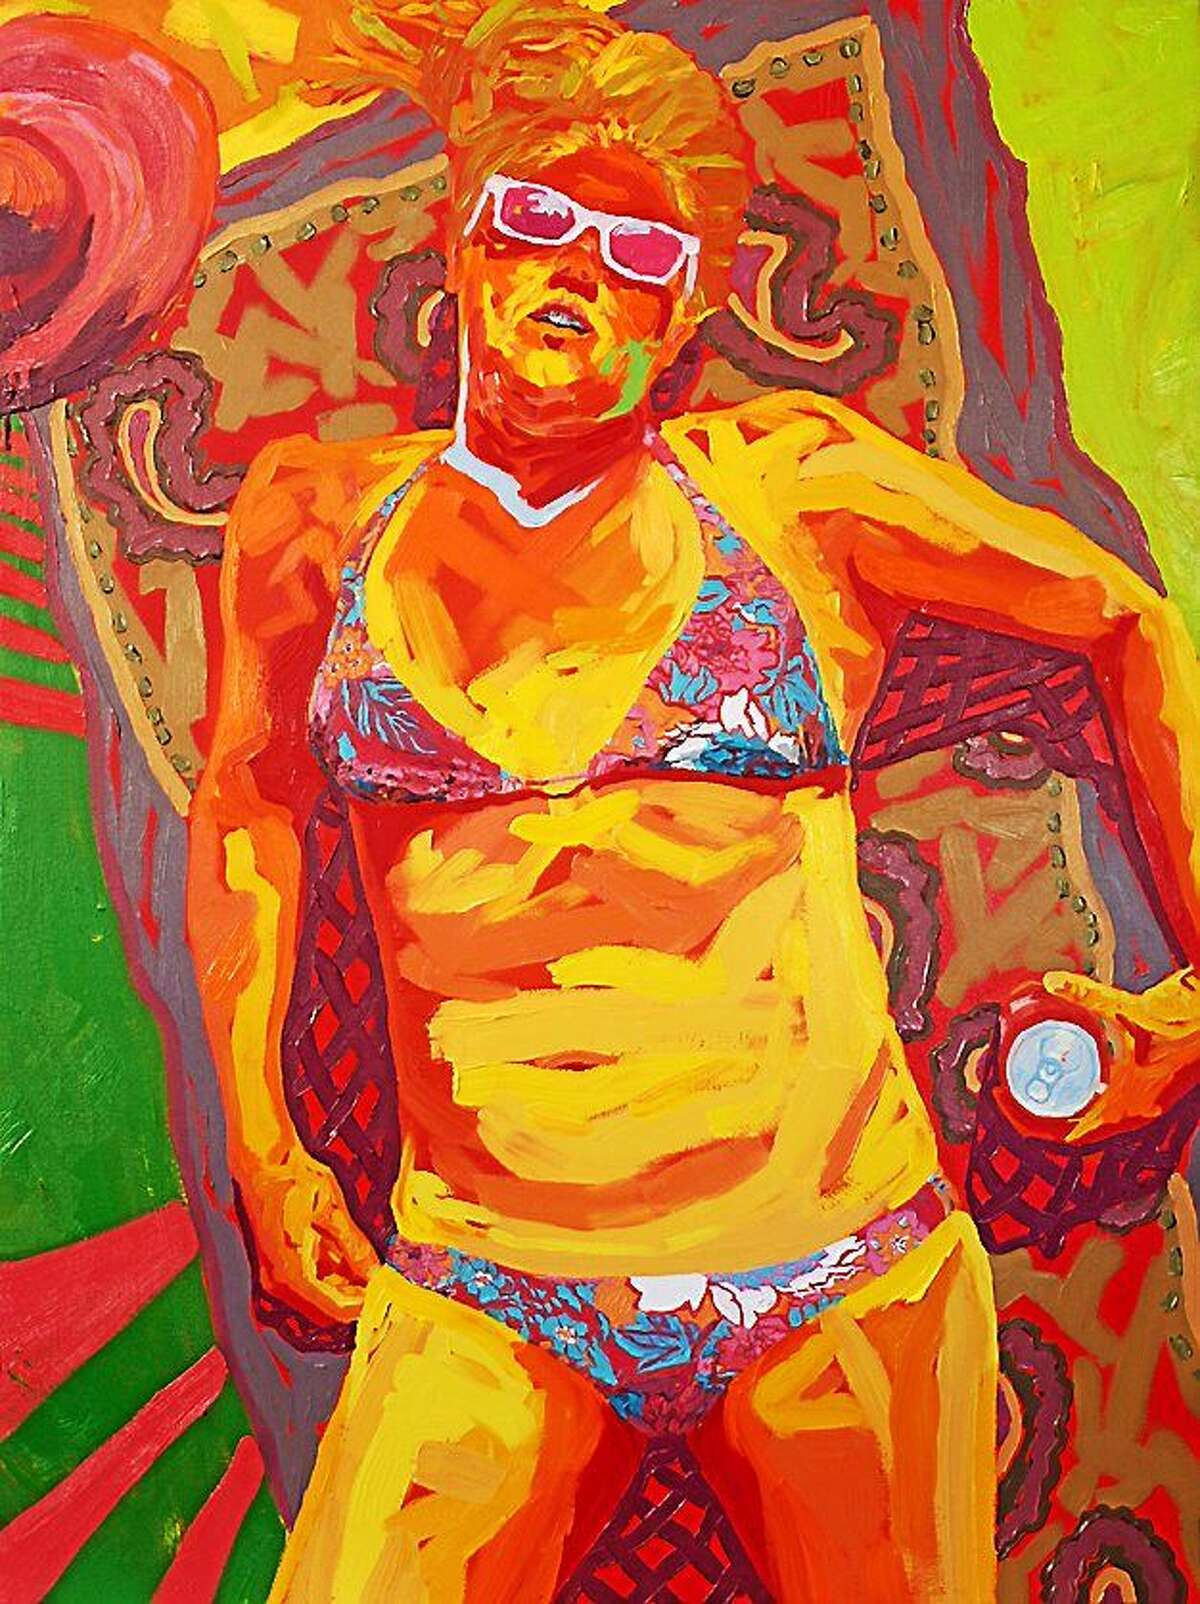 """Image courtesy of the artist Paintings by Clarissa R. Gerber will be exhibited at Middlesex Community College's Pegasus and Niche galleries from Jan. 26-March 6. Above, """"Allie in Summer,"""" 54 x 40 inches, oil on canvas, 2013."""